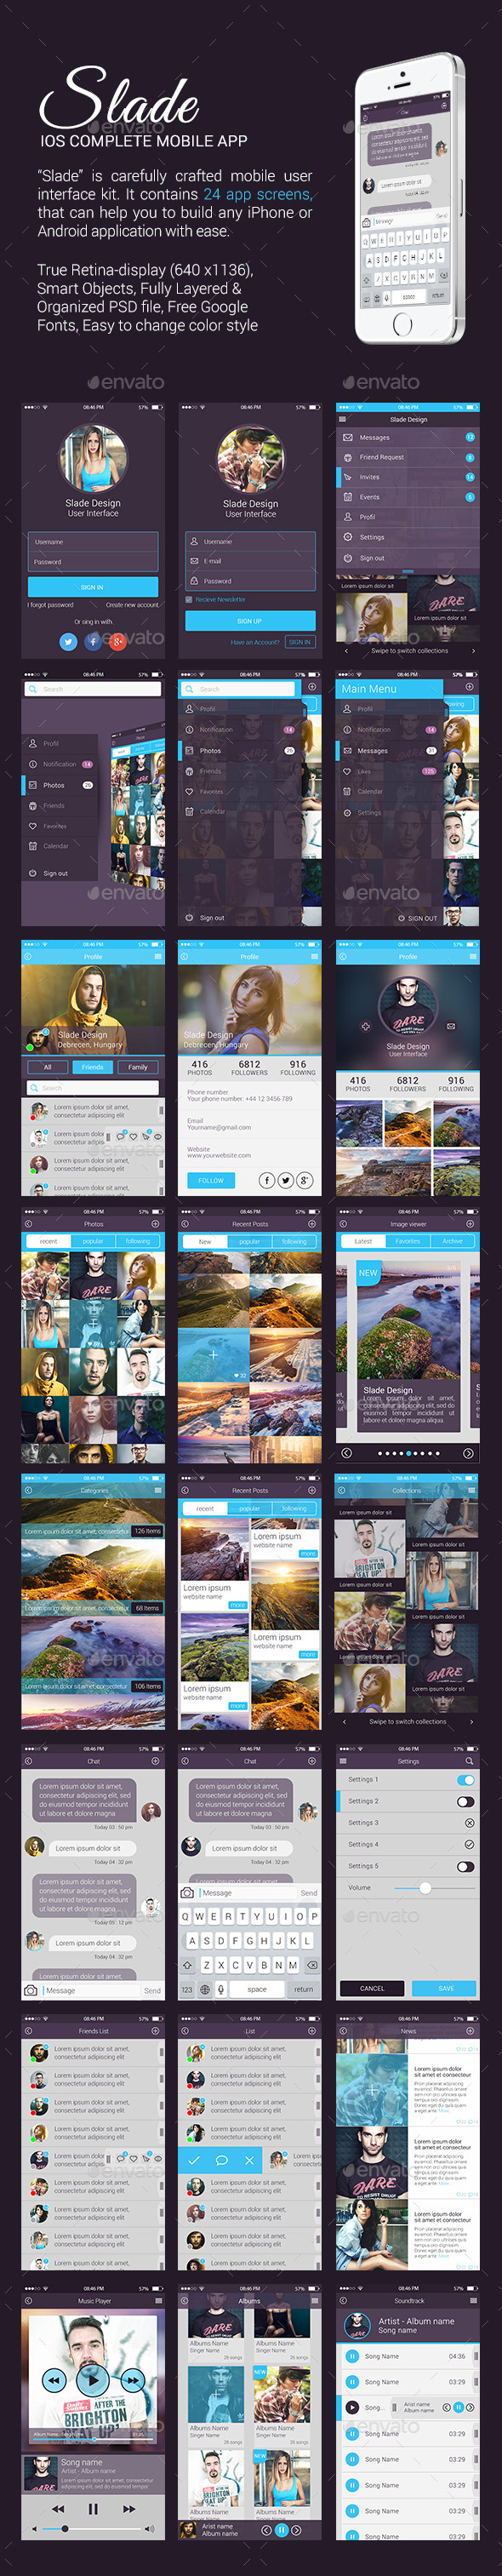 GraphicRiver Slade iOS Complete Mobile App 9965487